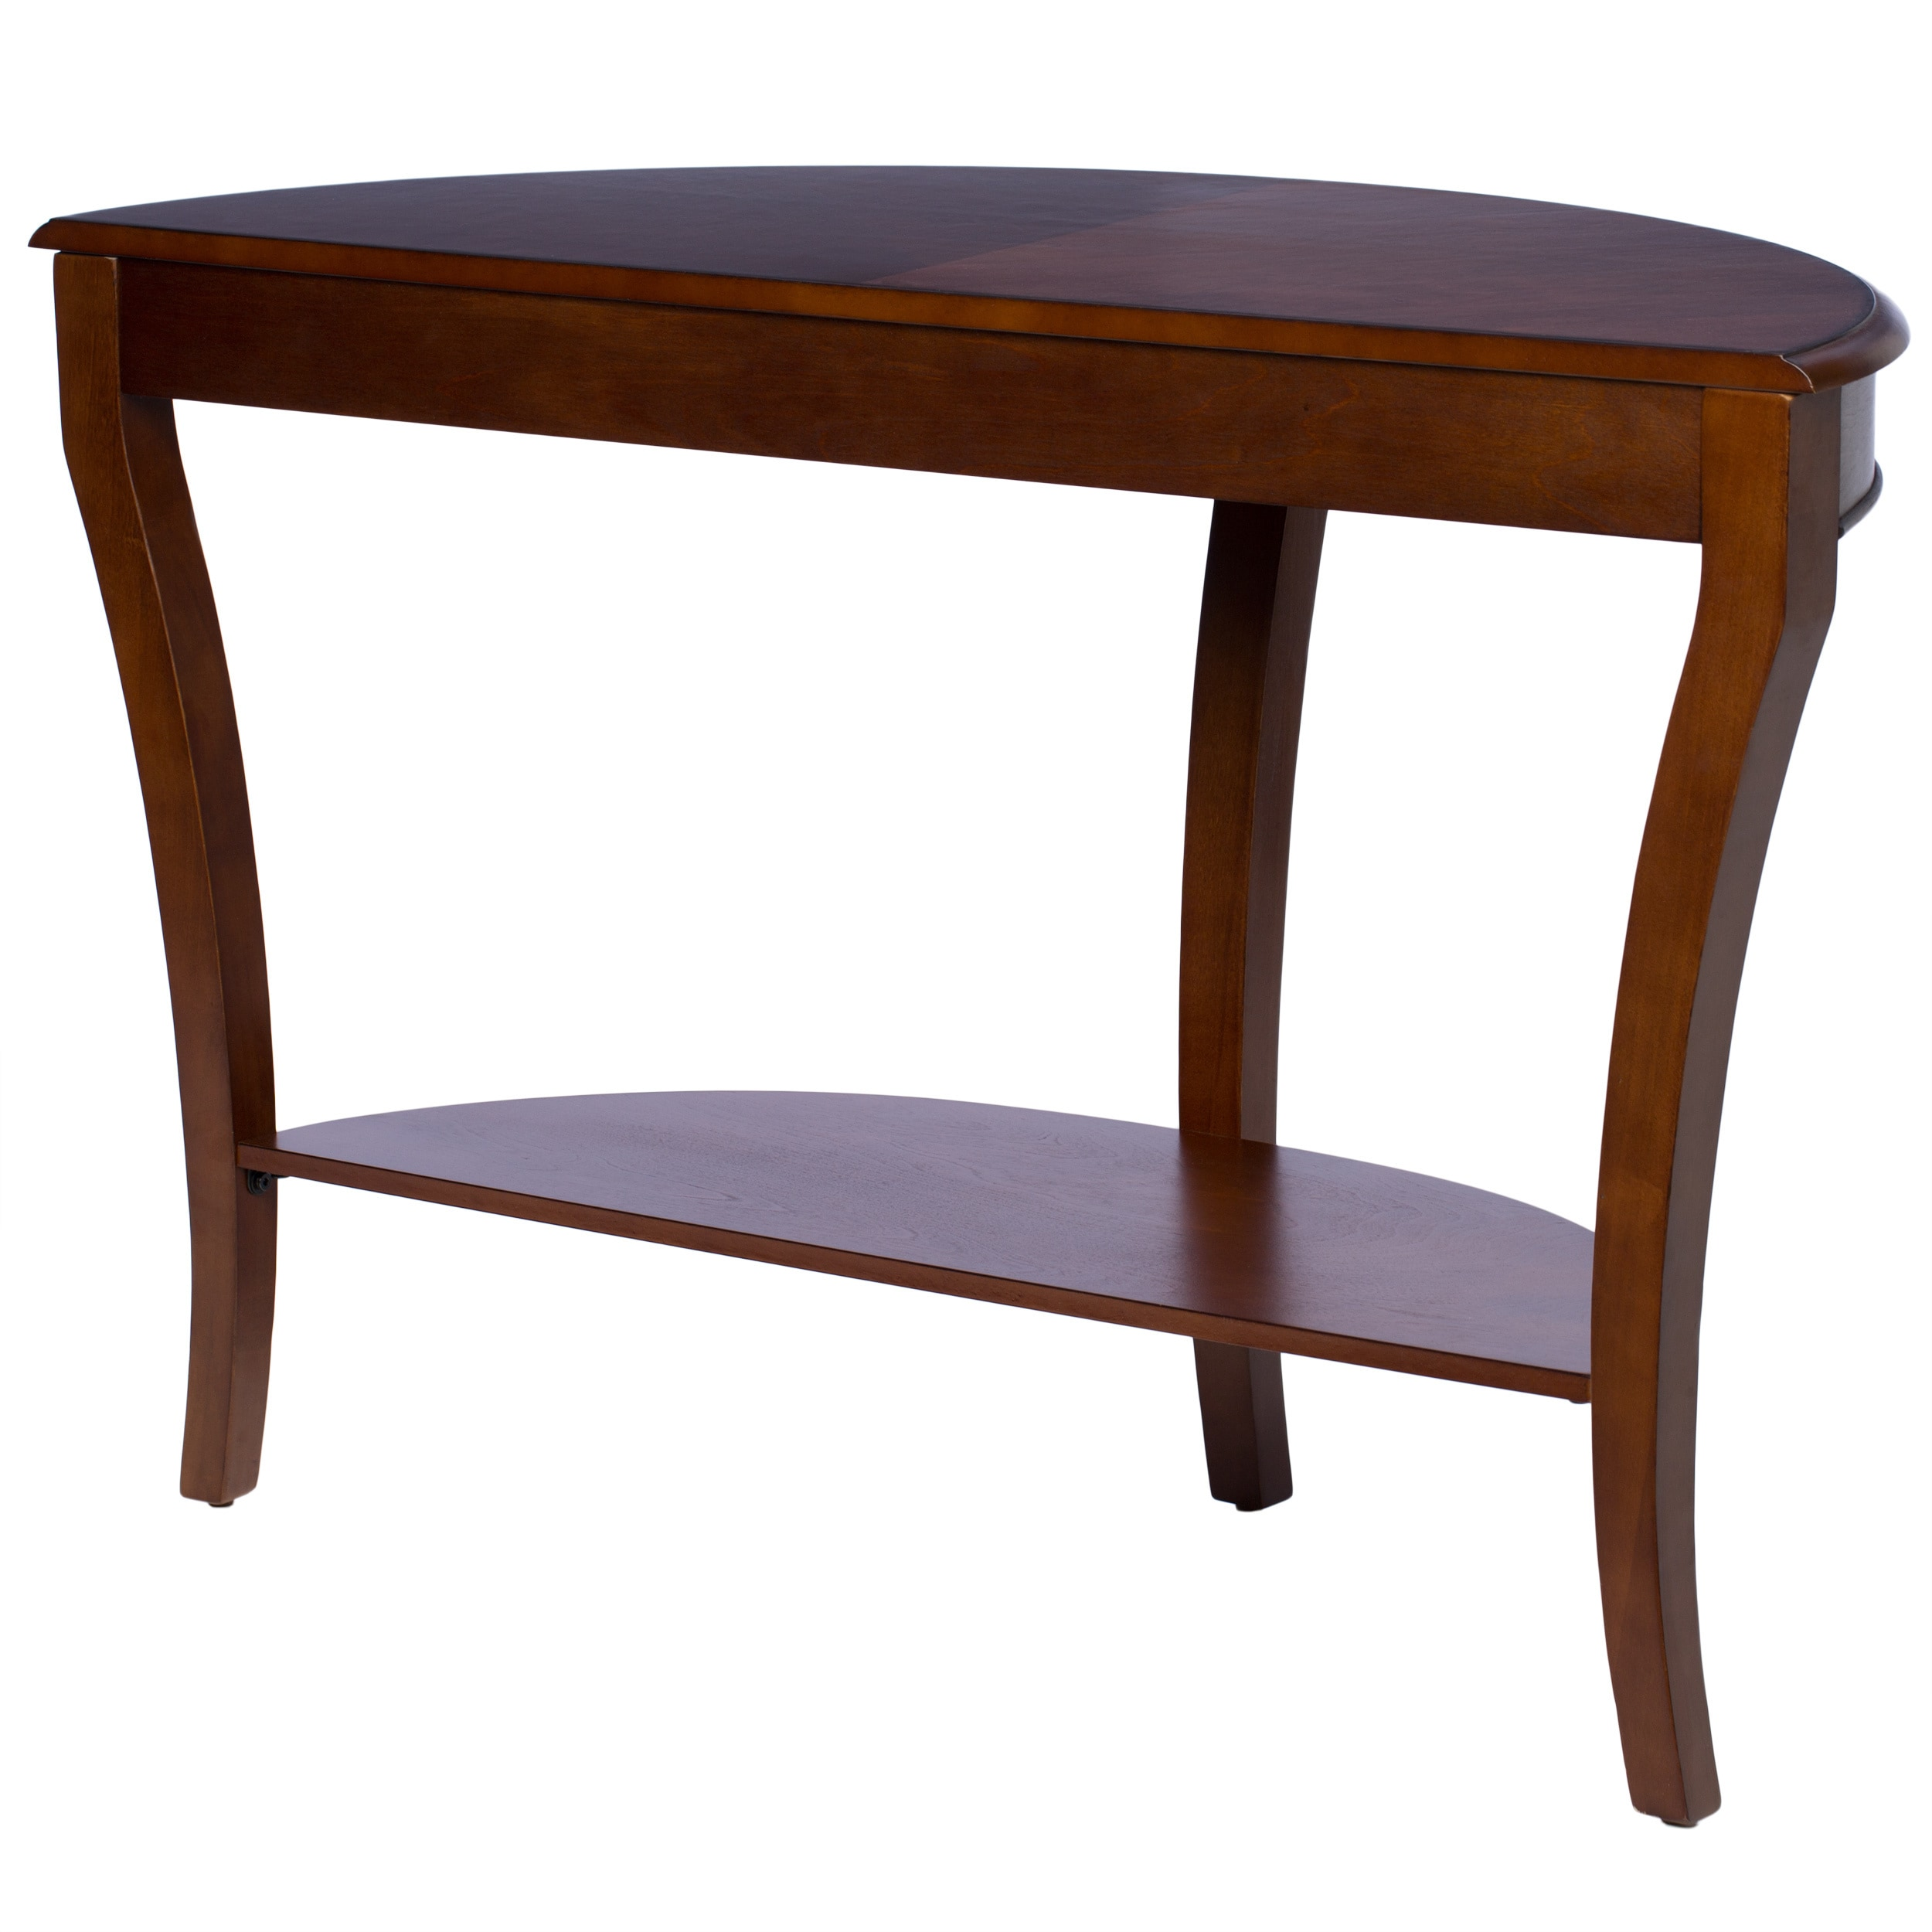 Copper Grove Half Round Sofa Table   Free Shipping Today   Overstock.com    11143150